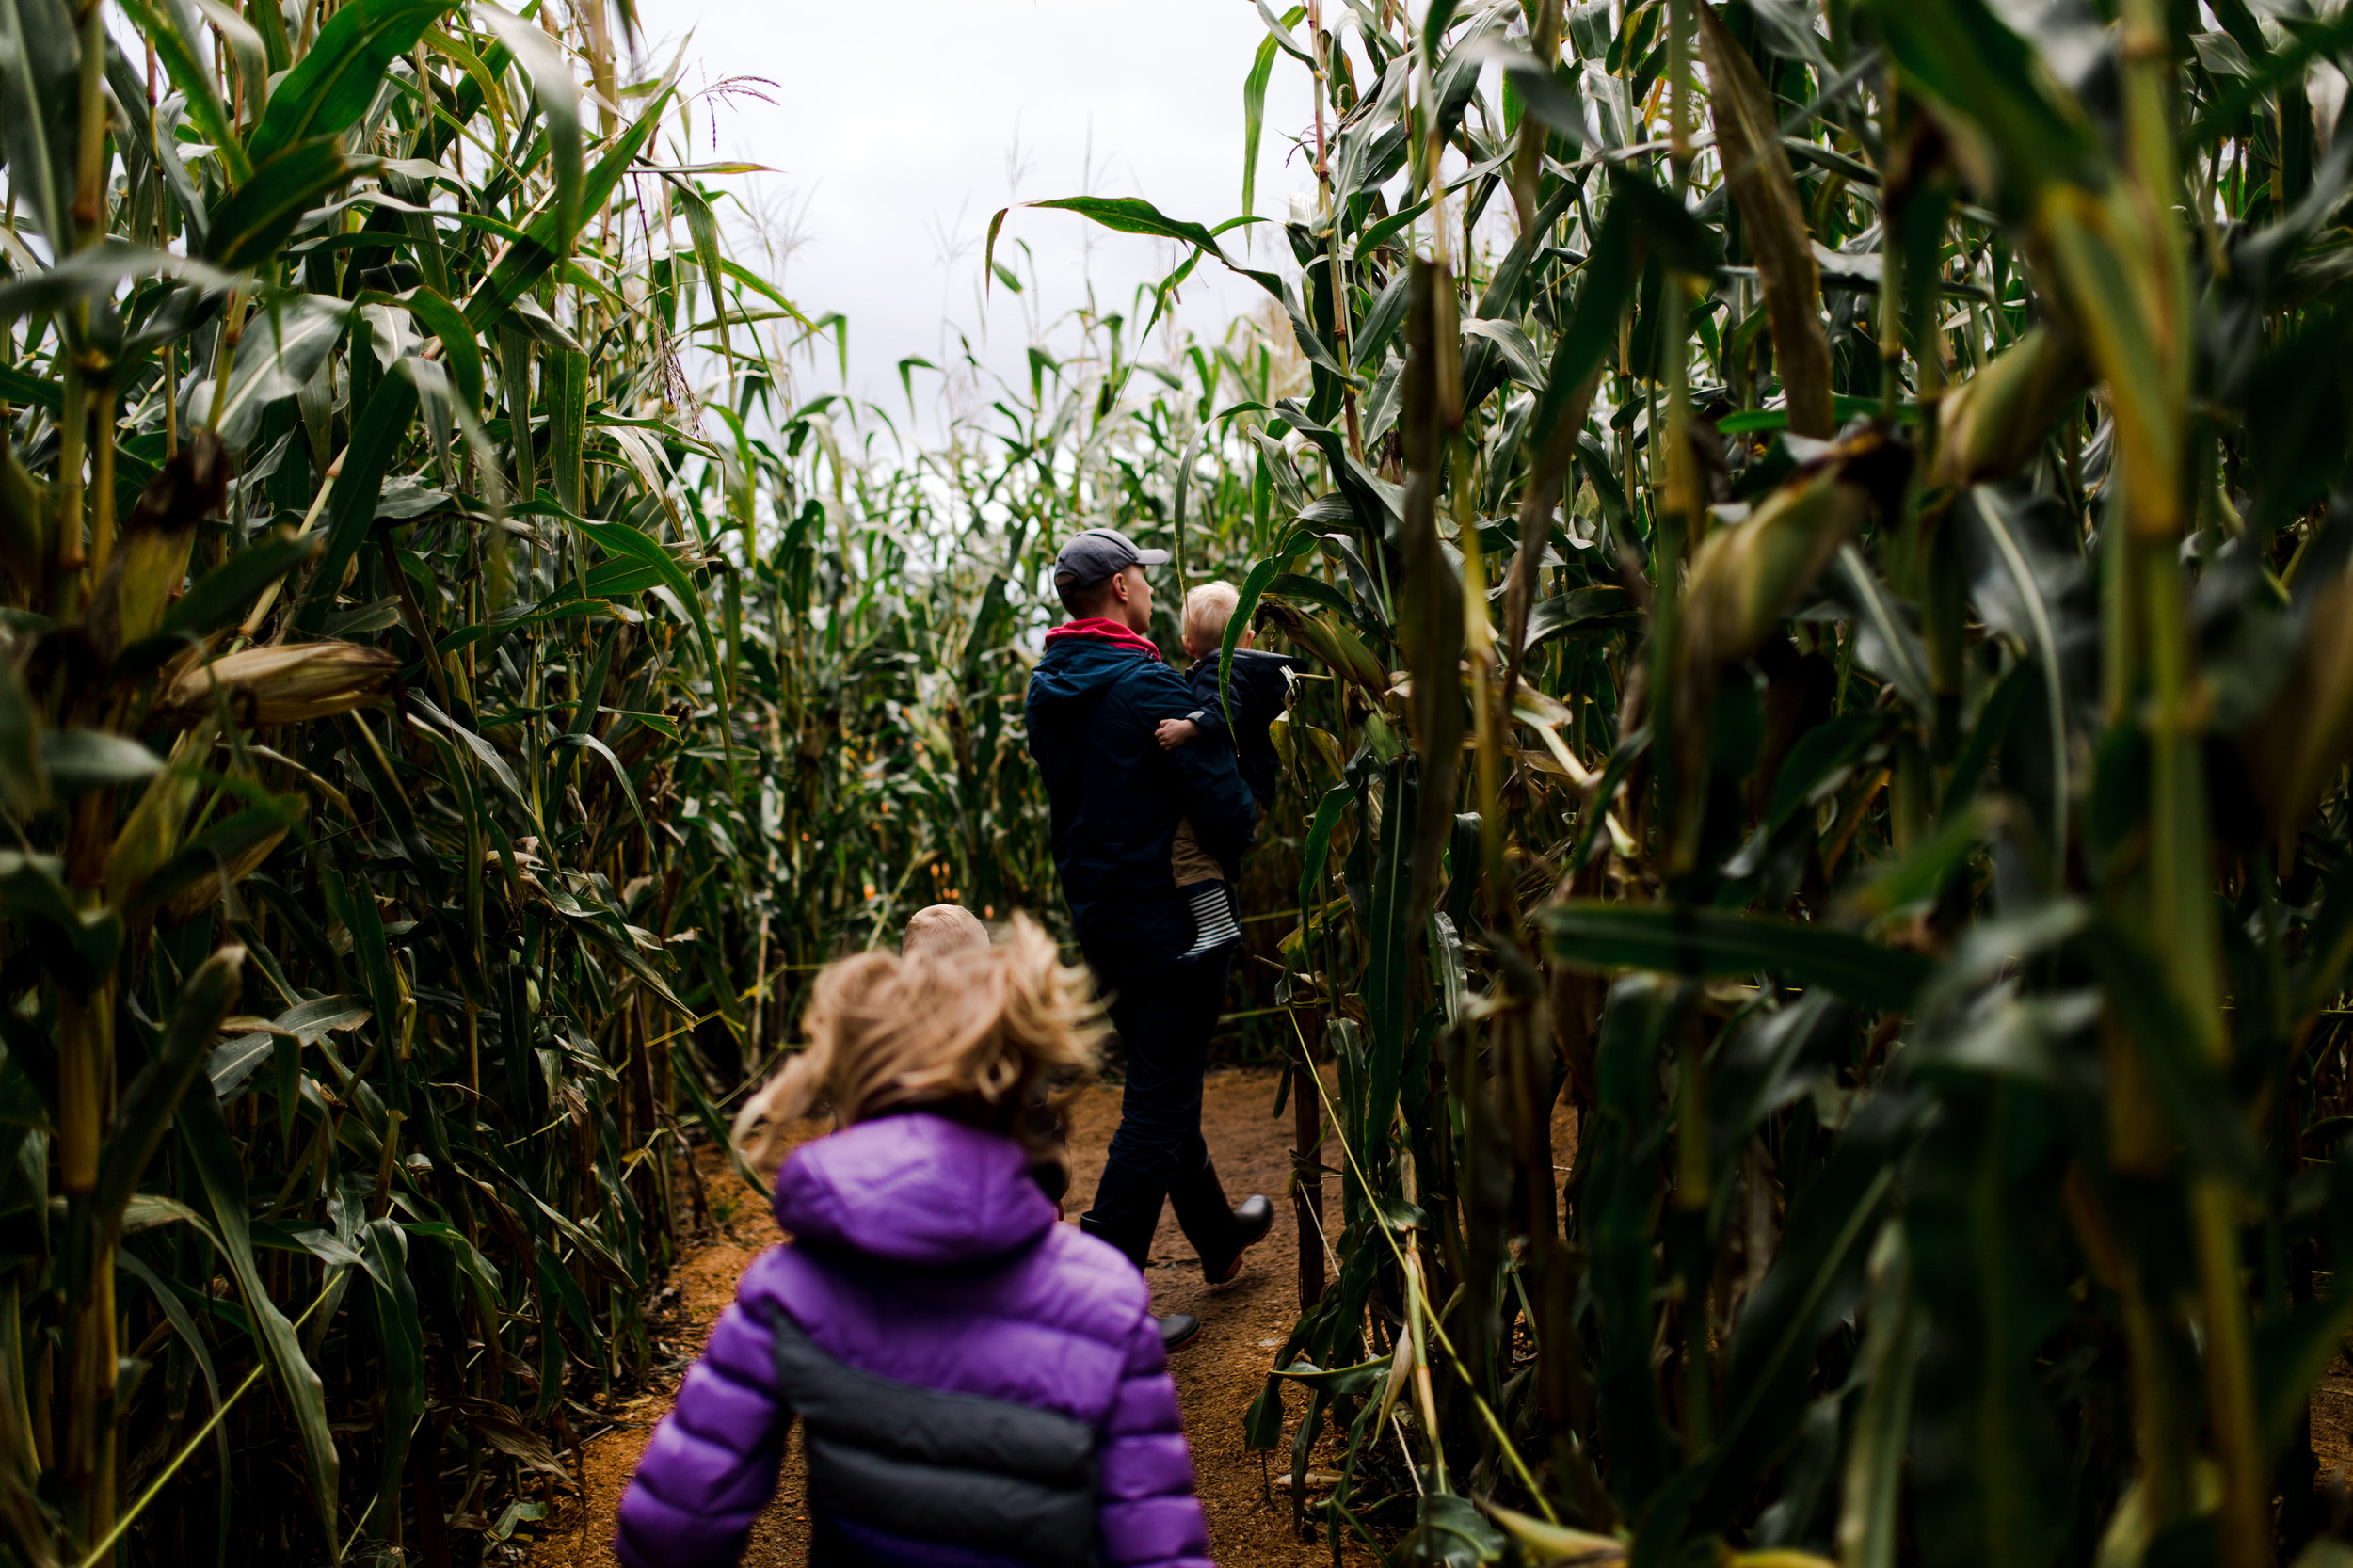 girl chasing after her dad and baby brother in corn maze